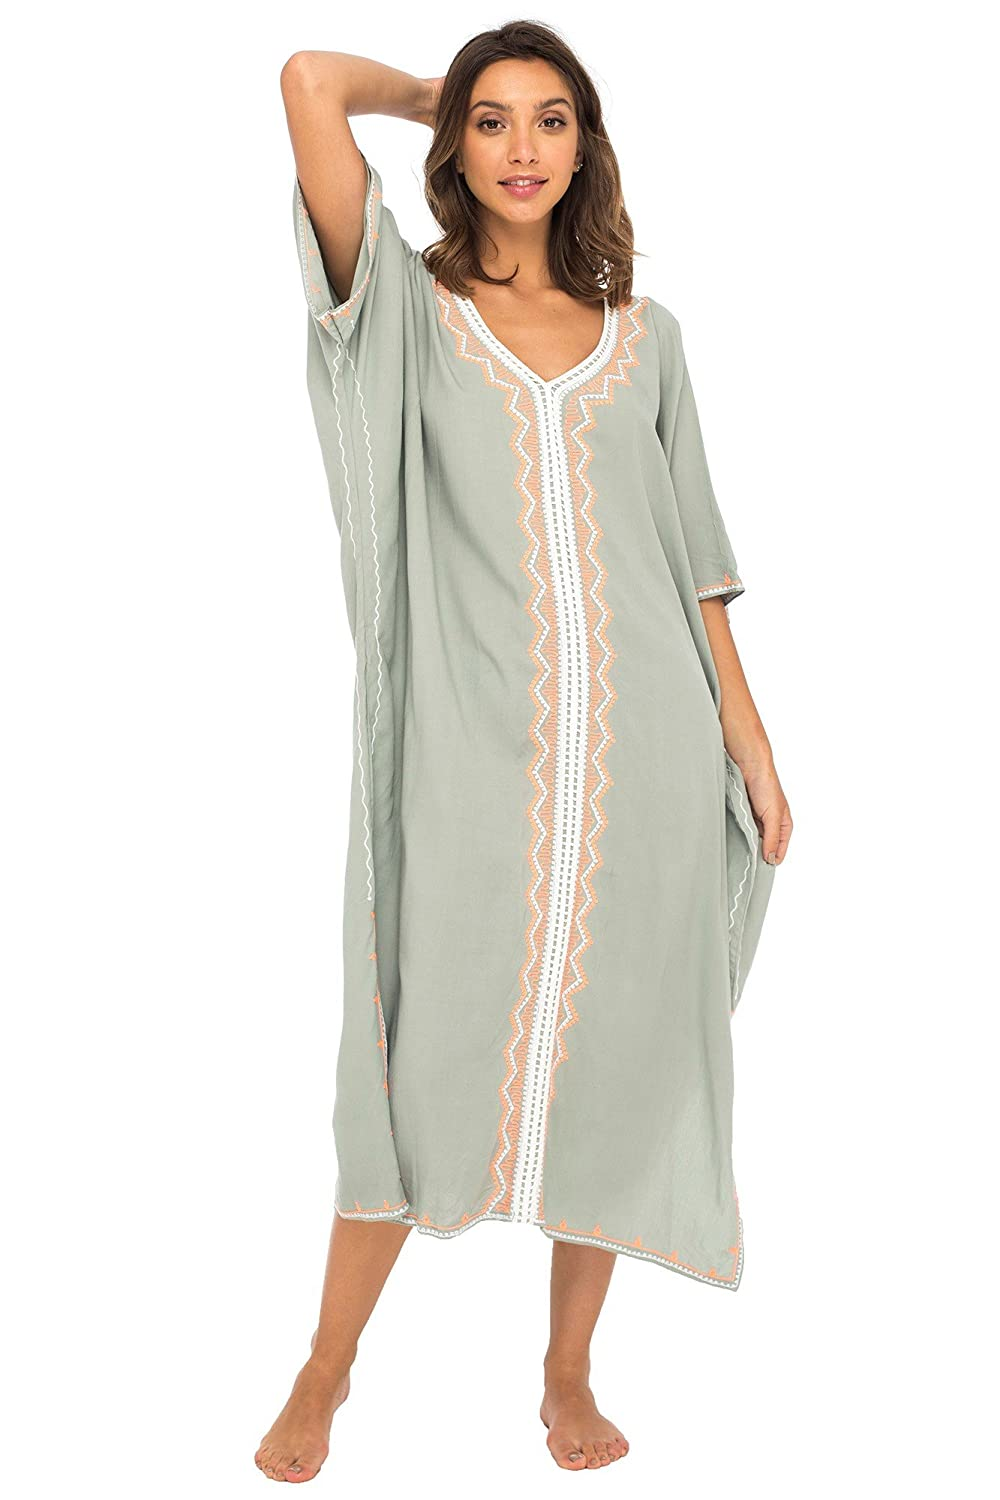 63c97f6d3a Back From Bali Womens Beach Cover up Maxi Embroidered Dress, Long Beach  Caftan Poncho for Swimsuit Grey at Amazon Women's Clothing store: